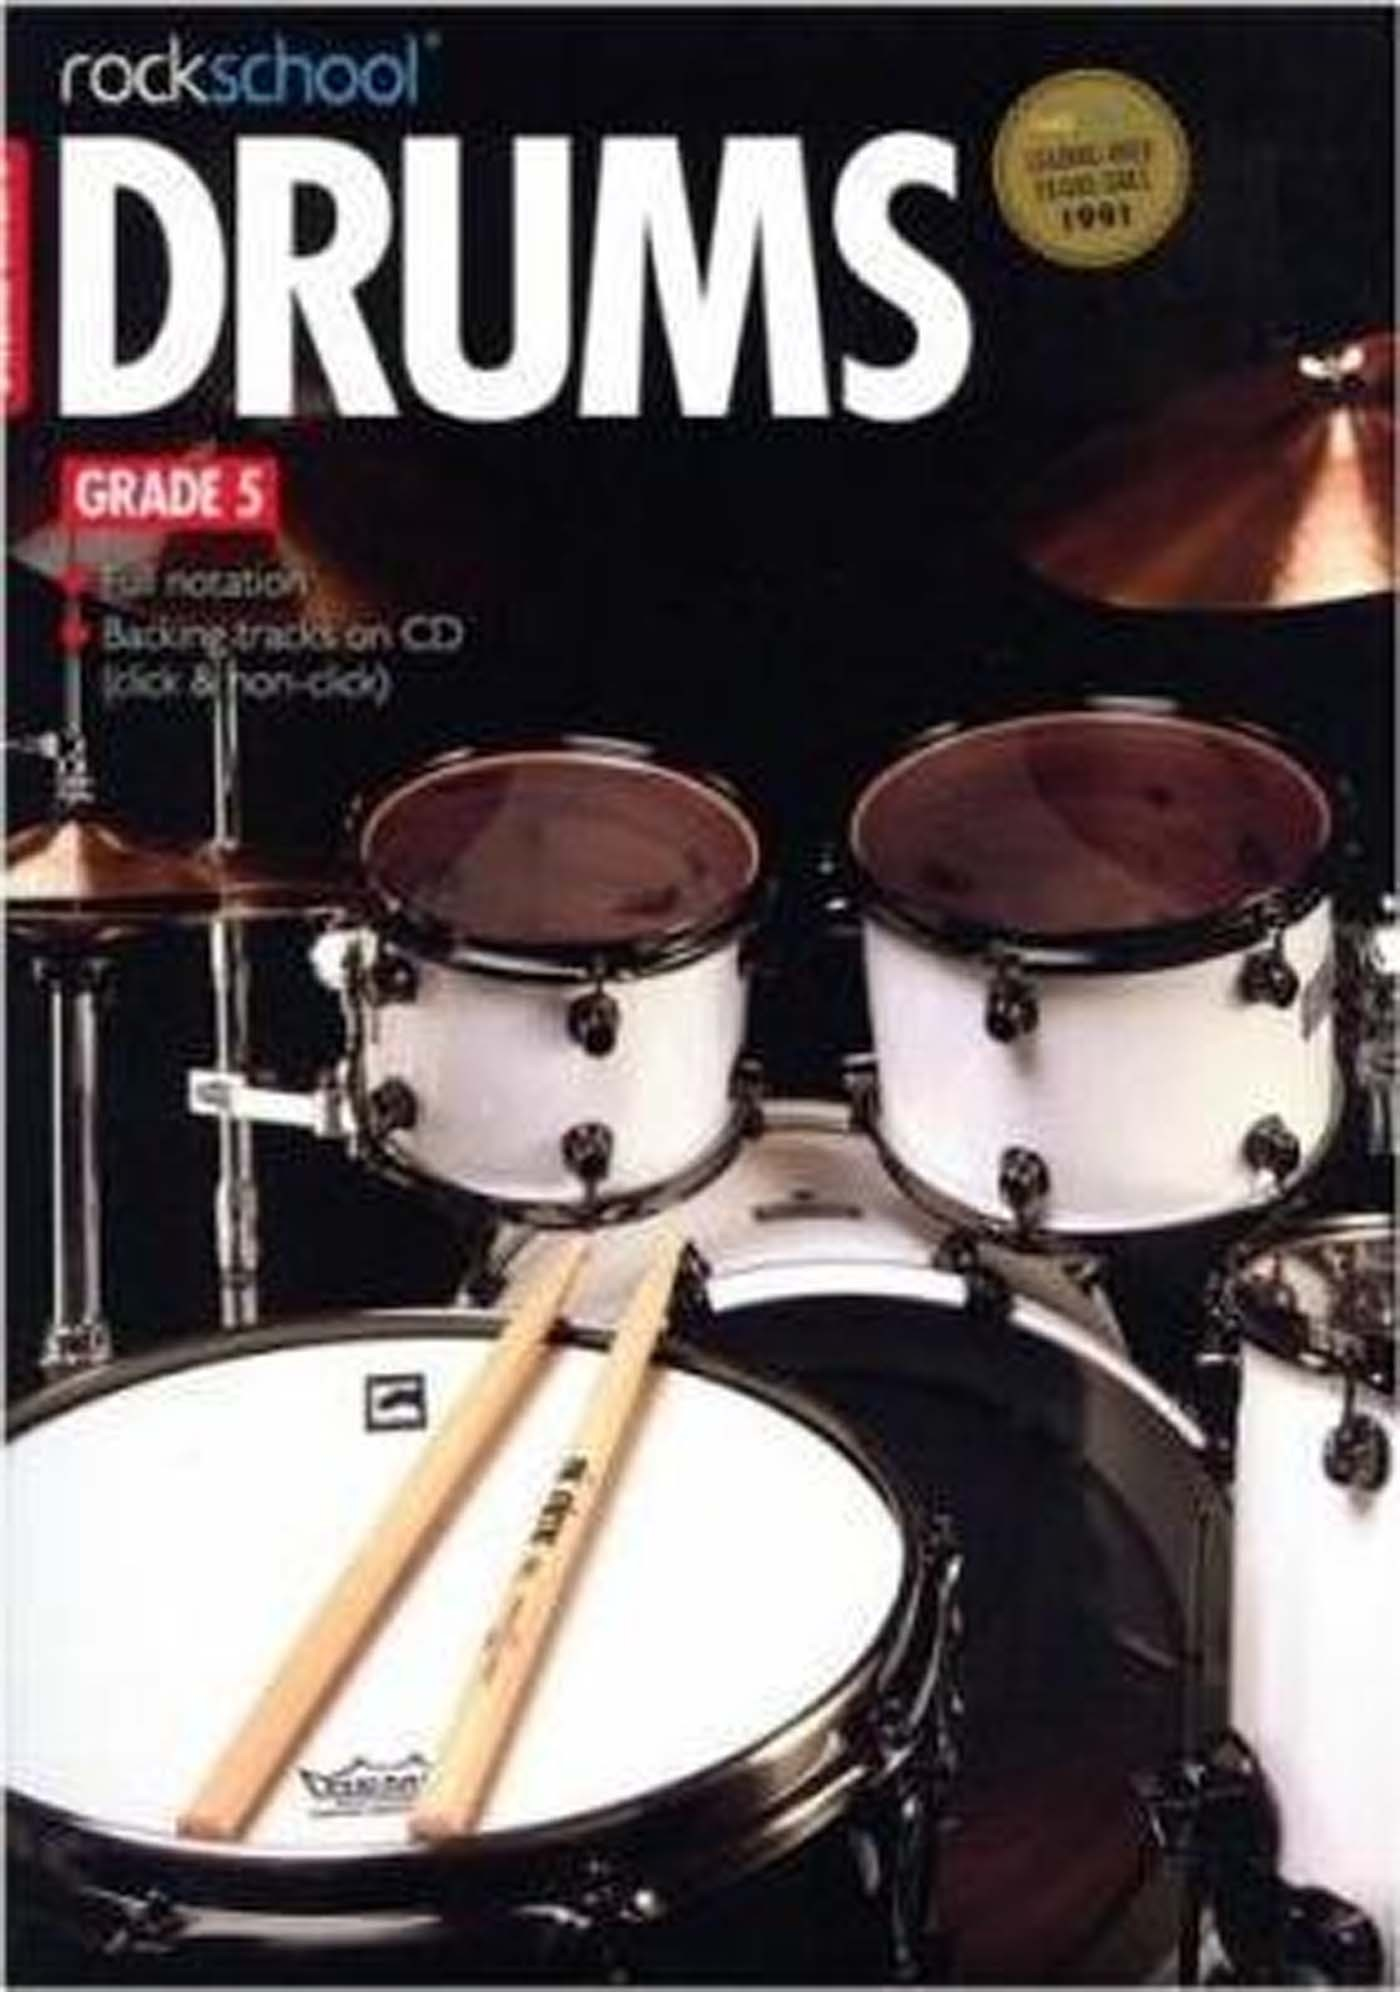 Rockschool Drums Grade 5 Book & CD for Exams S162